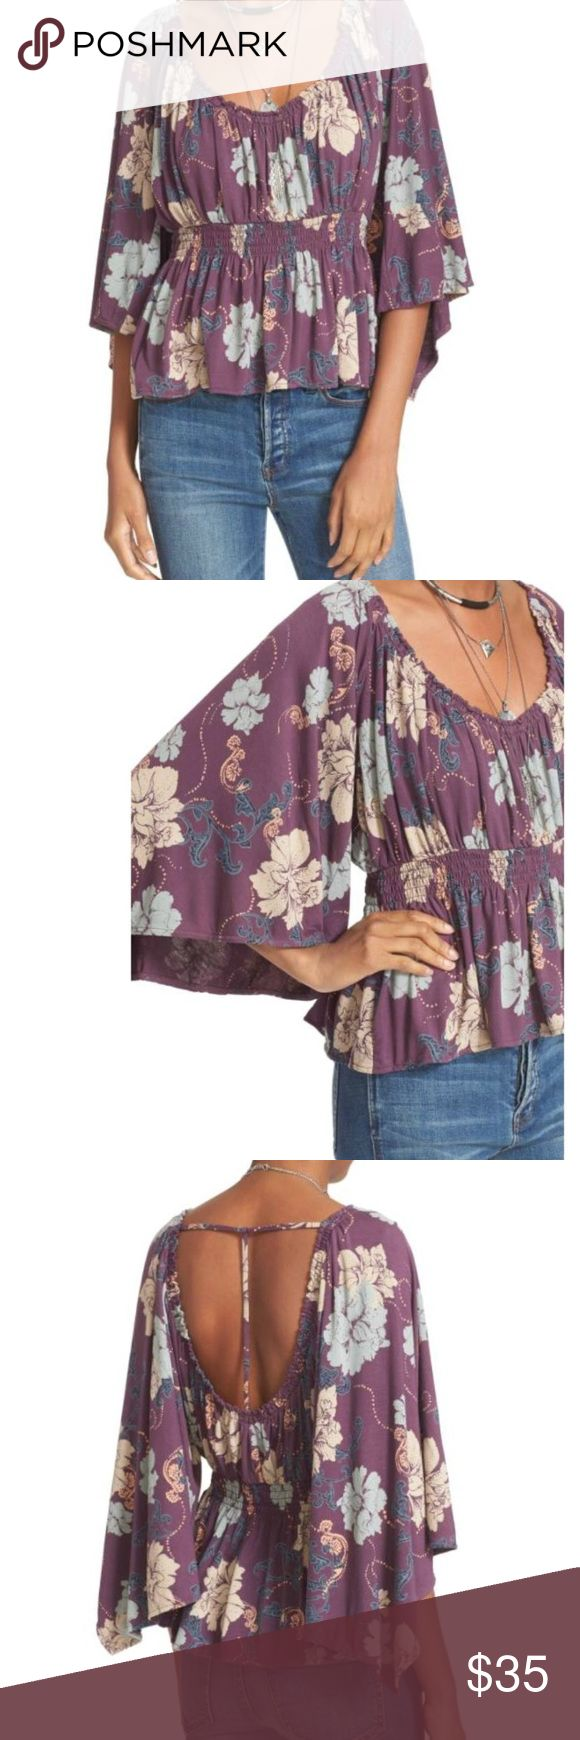 """NWT Free People Glenside Top. XS Brand New!  -Fits true to size, order your normal size -Designed for a loose fit -Scoop neck and back, three-quarter wide sleeves -Pointed cuffs, elasticized smocked empire waist -T-strap back, allover floral print -Approx. 22"""" from back of neck to hem Free People Tops"""